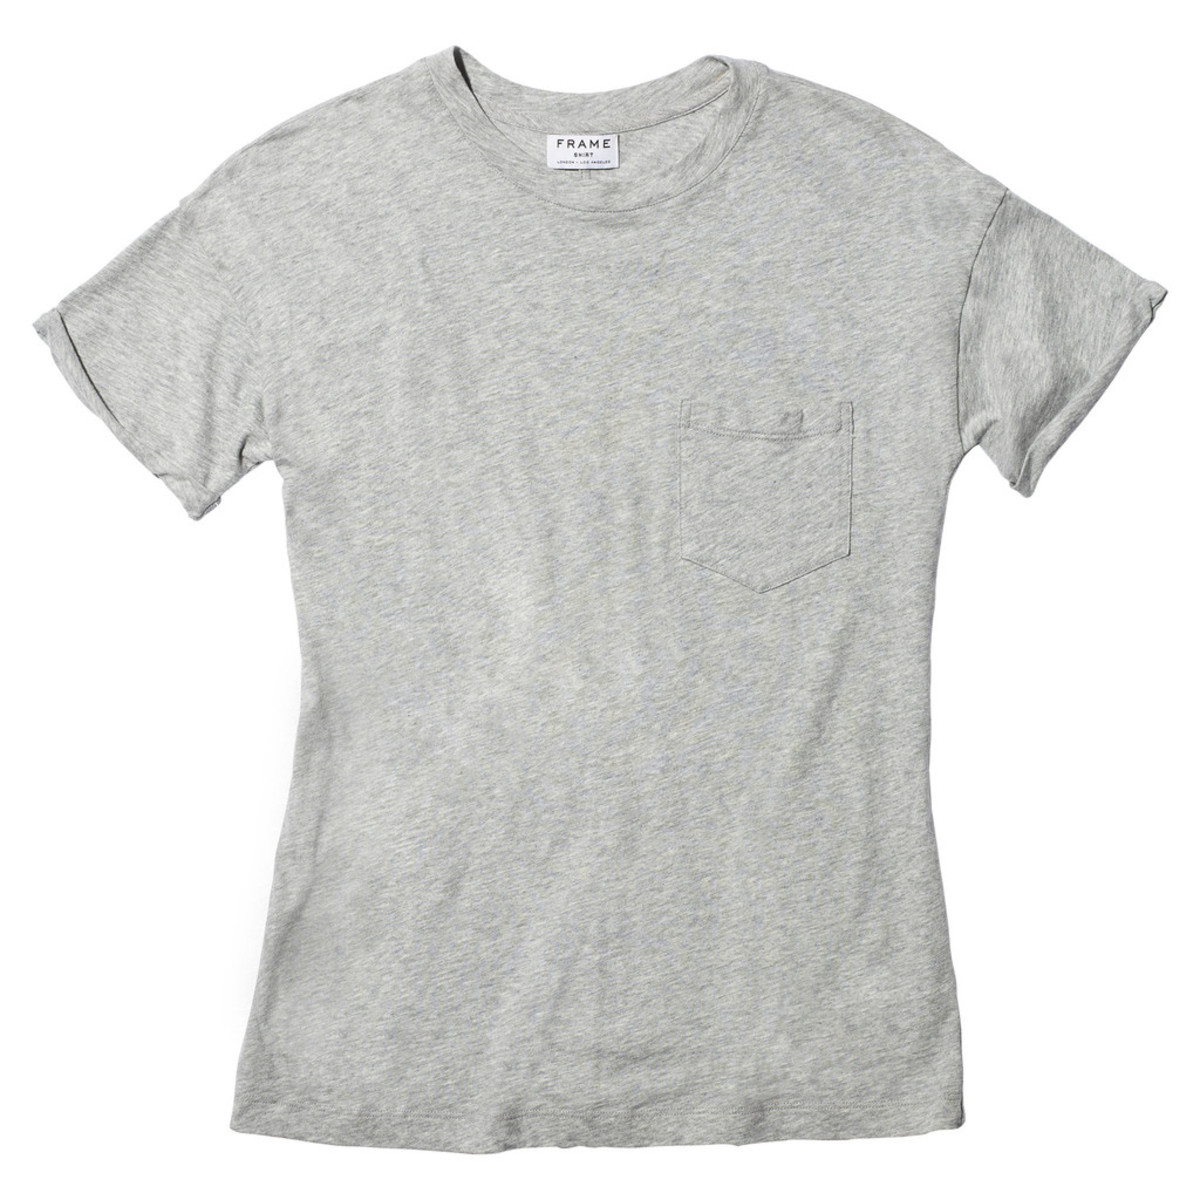 Frame Le Boyfriend tee, $90, available at Goop's Classic shop.